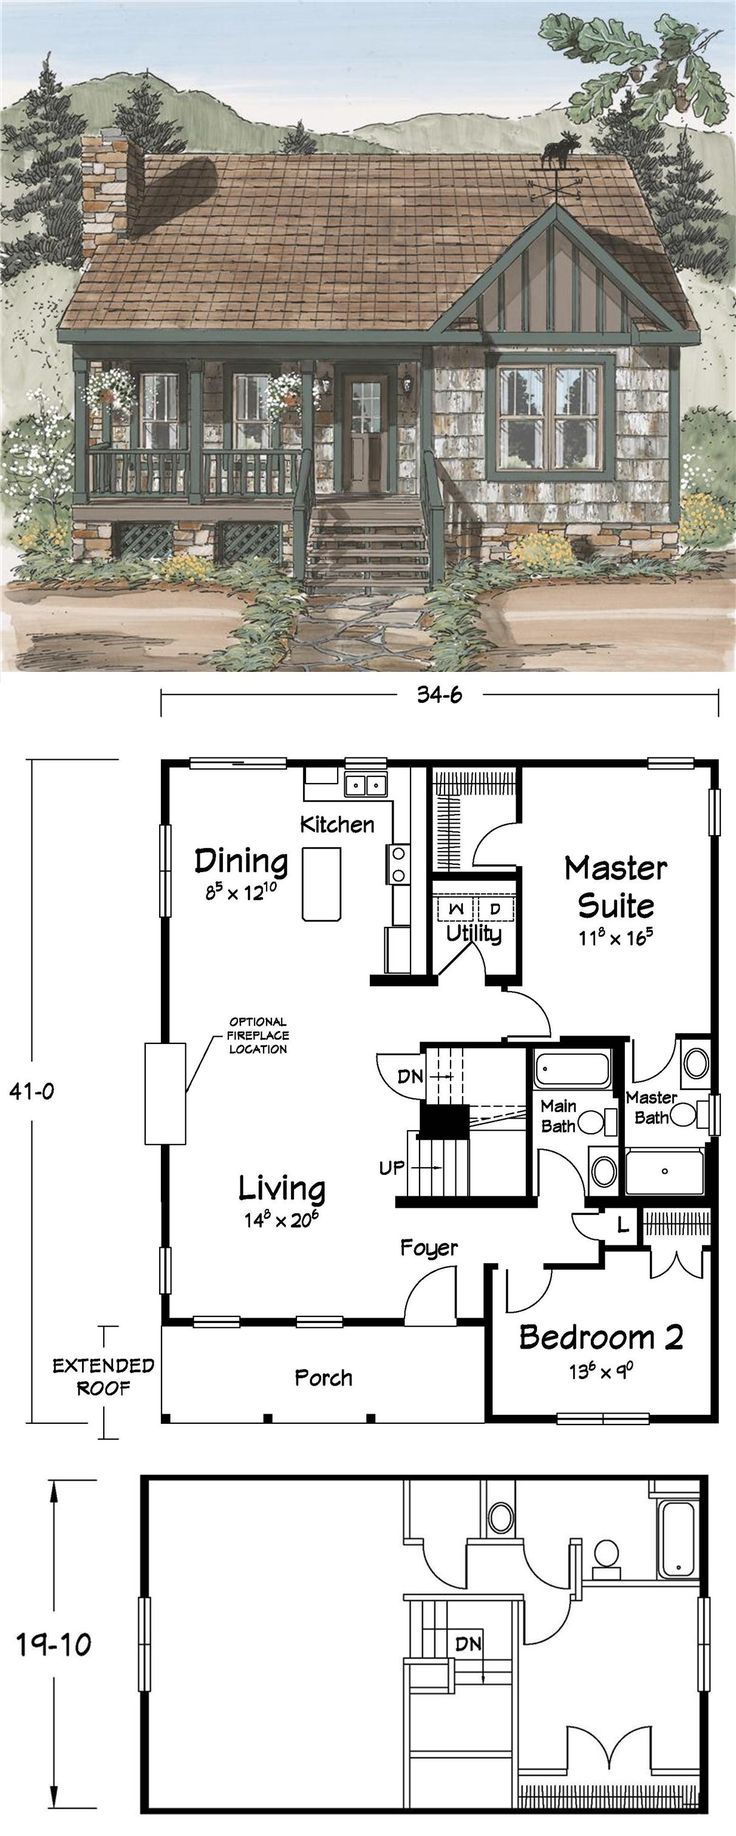 Cute floor plans tiny homes pinterest cabin small Cabin and cottage plans